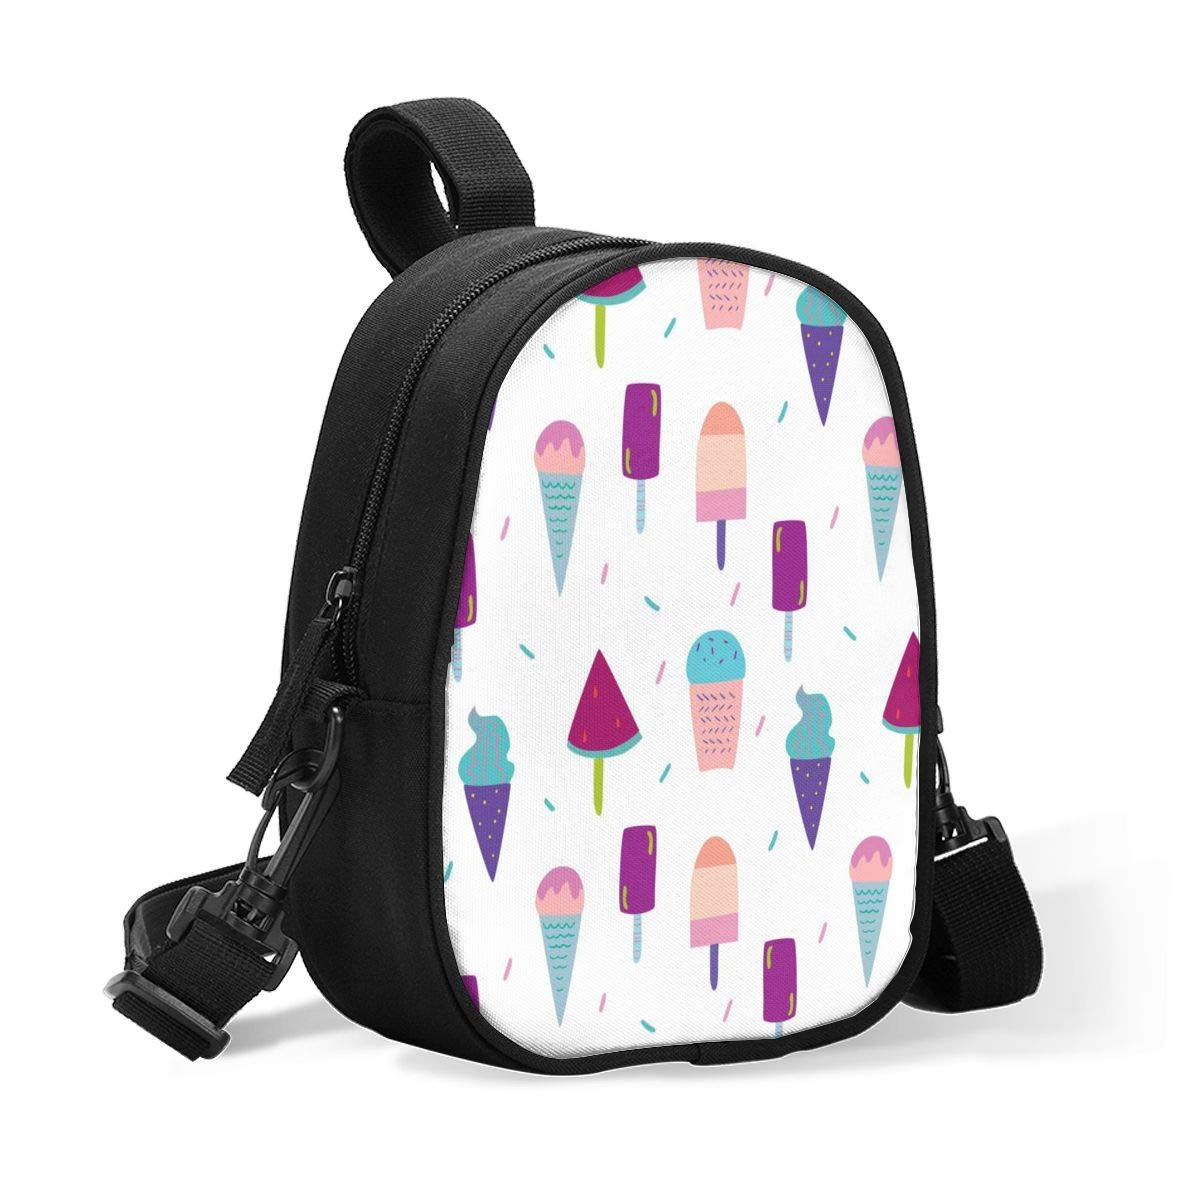 Insulated Baby Bottle Tote Bags for Travel Double Baby Bottle Warmer Cool Cartoon Cute Ice Cream Popsicle Multicolor Breastmilk Baby Bottle Cooler & Travel Bag,Easily Attaches to Stroller Diaper Bag